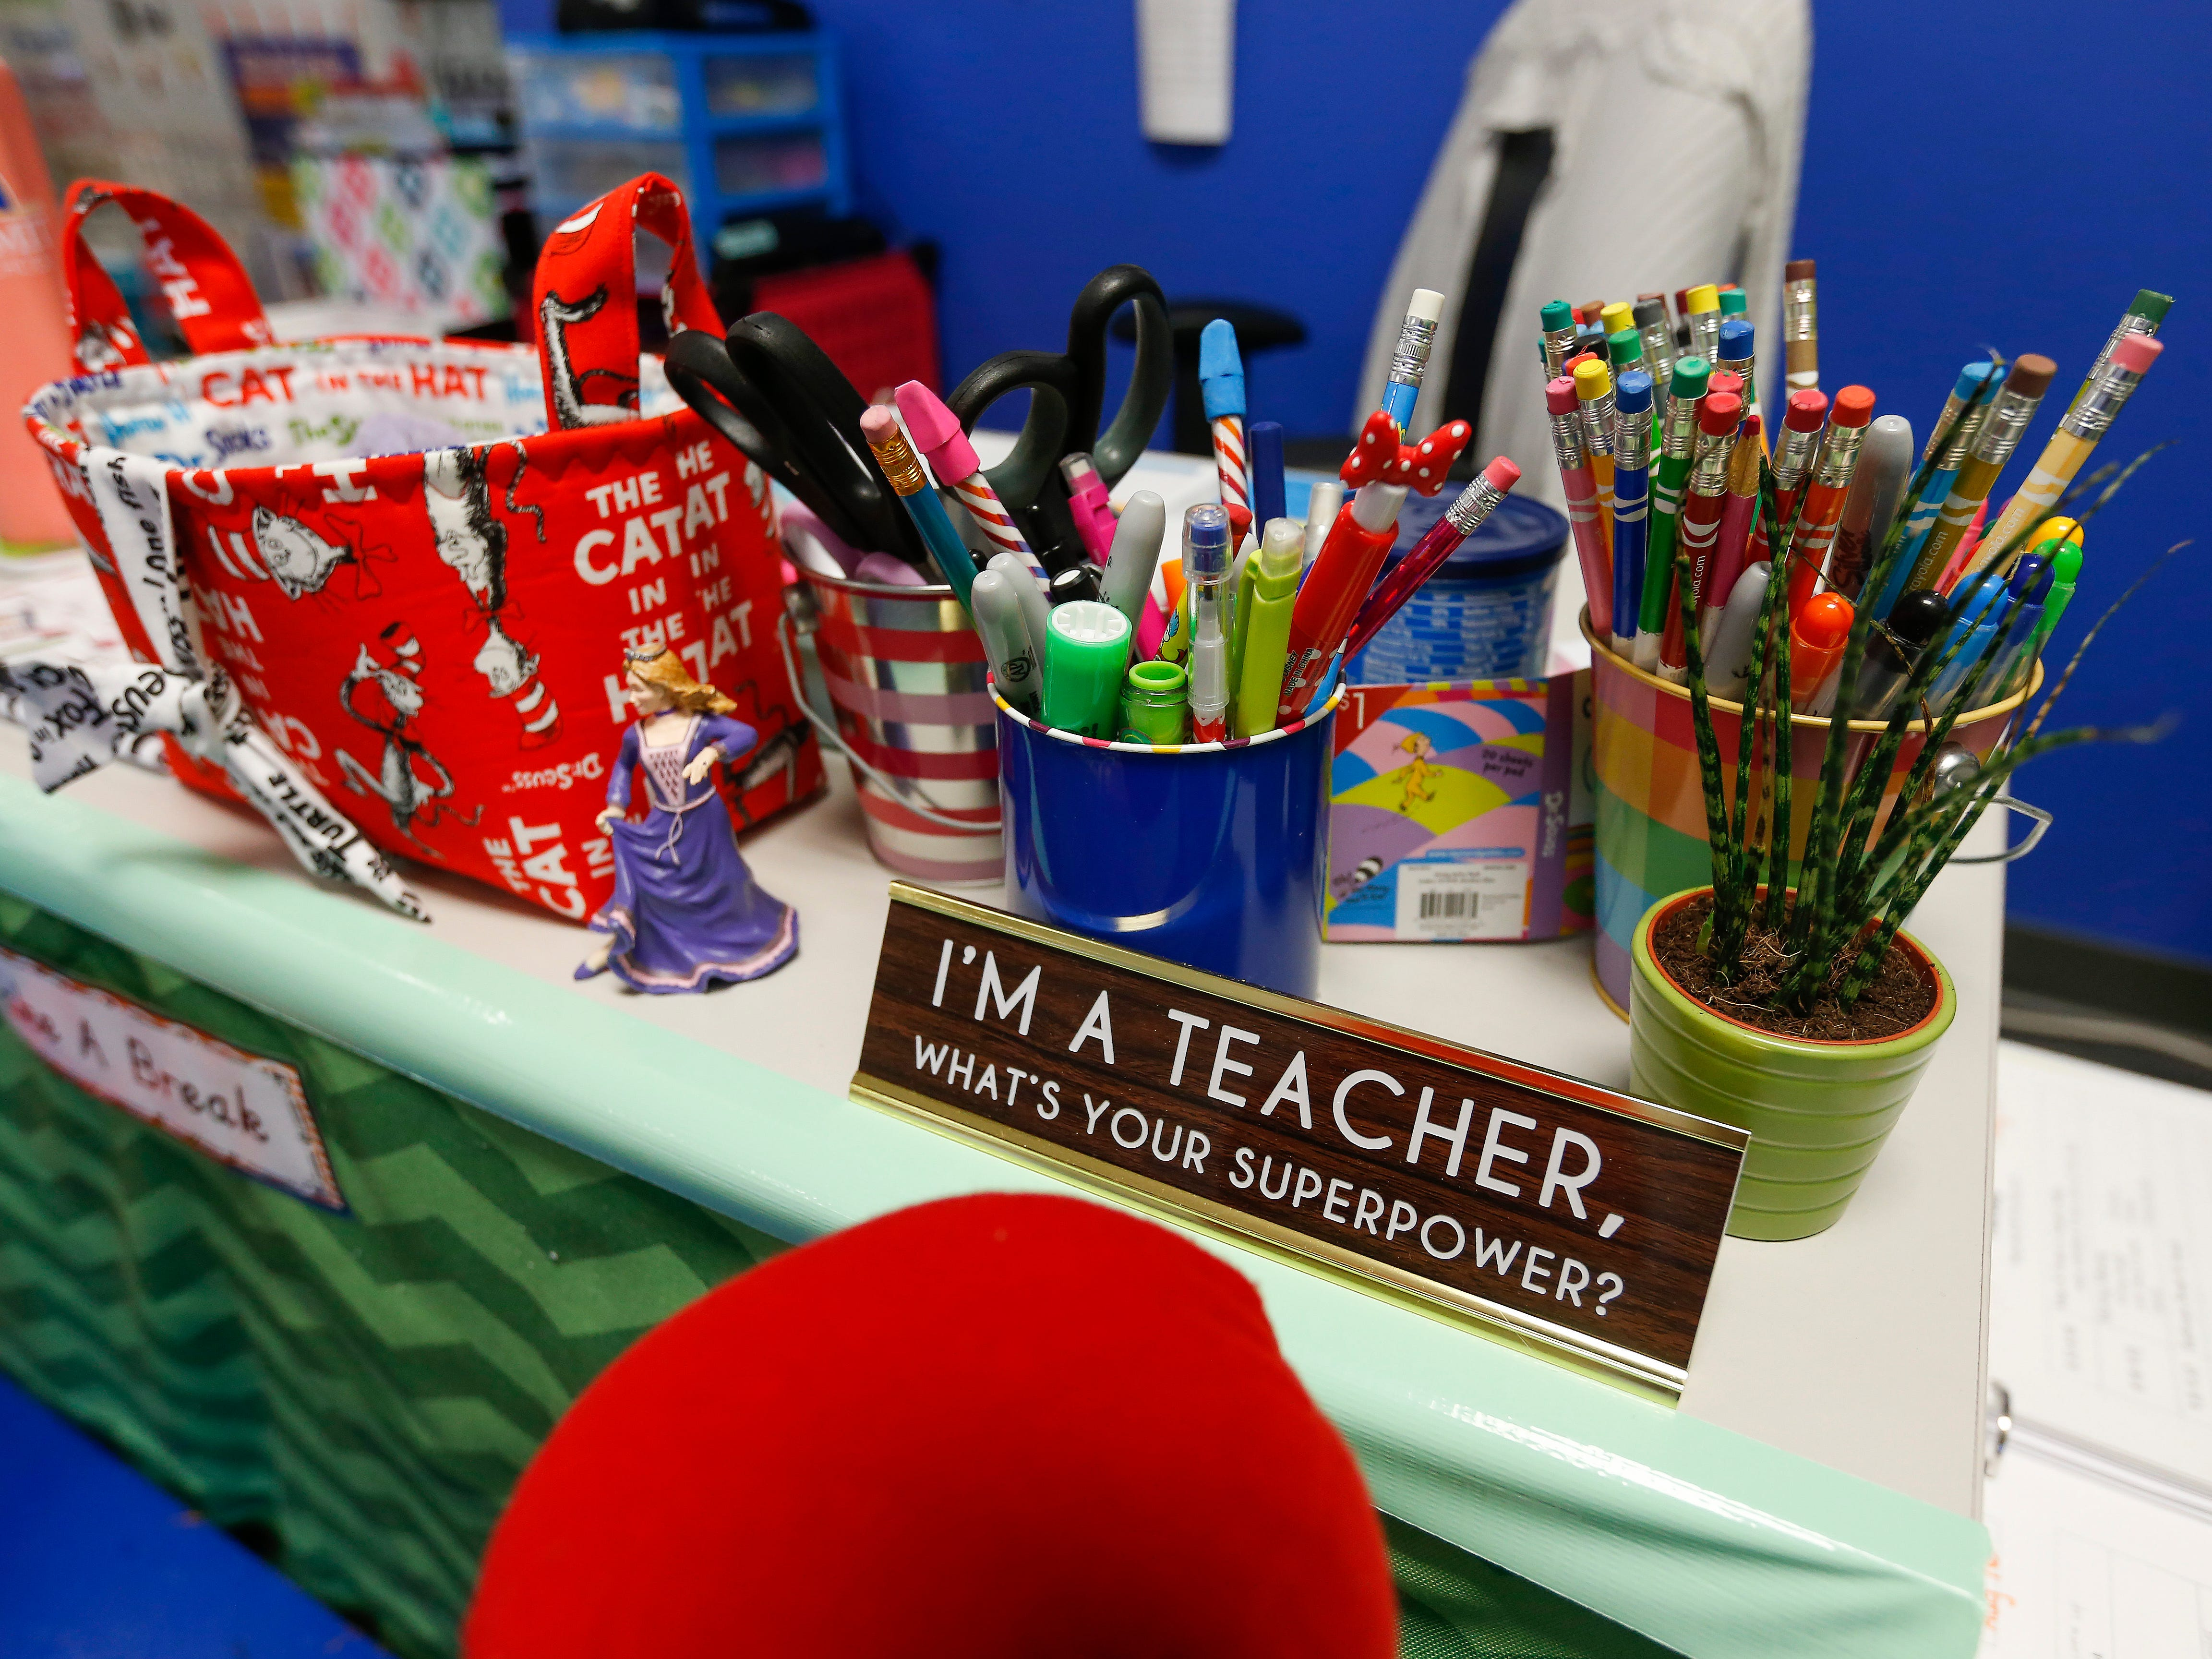 A teacher's desk inside the beginners classroom at the Summit Preparatory School.